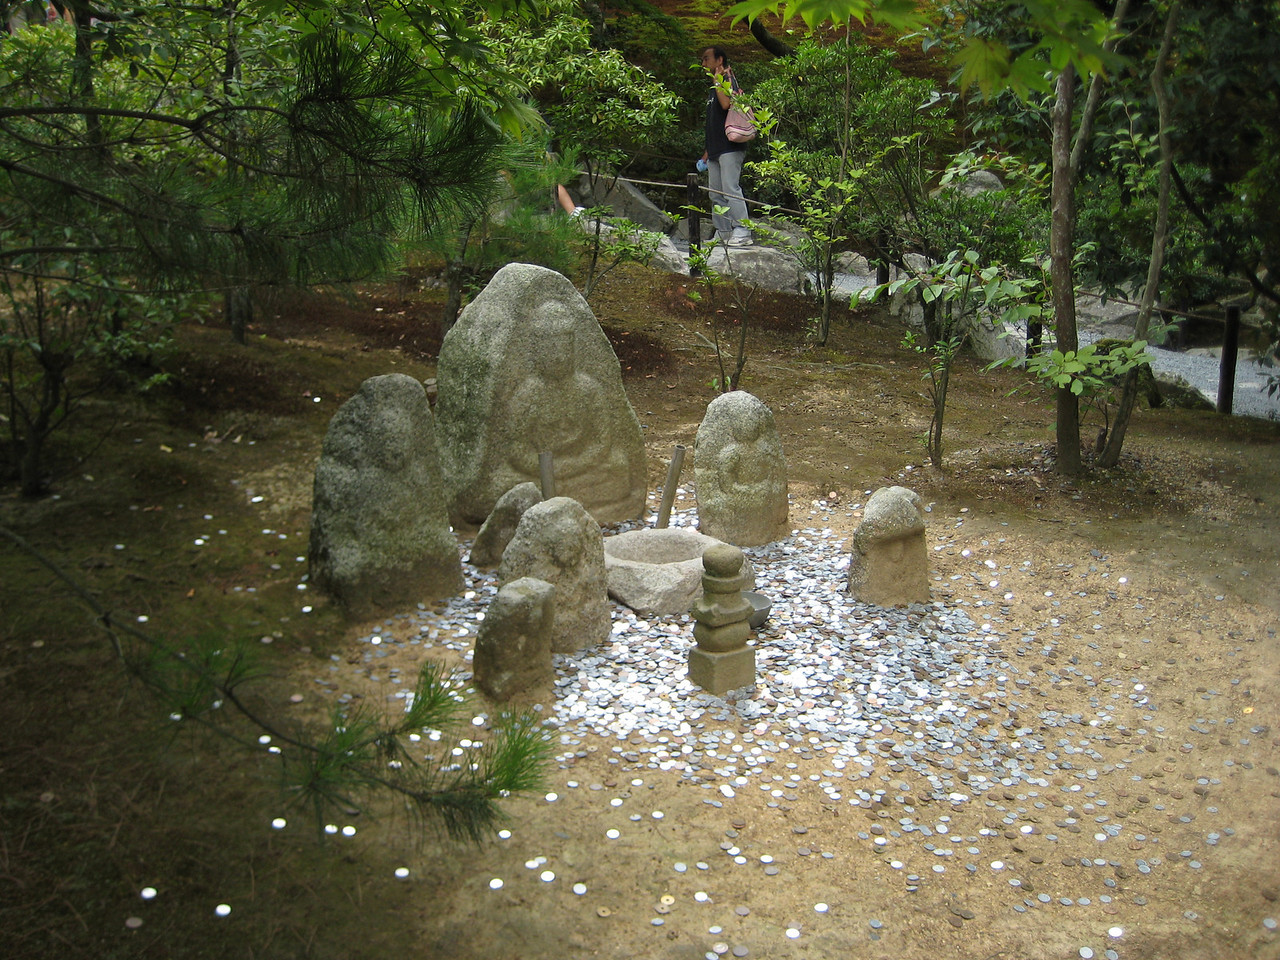 A variation on the wishing well. If you can toss your coin into the stone bowl in the center, your prayer will be answered.